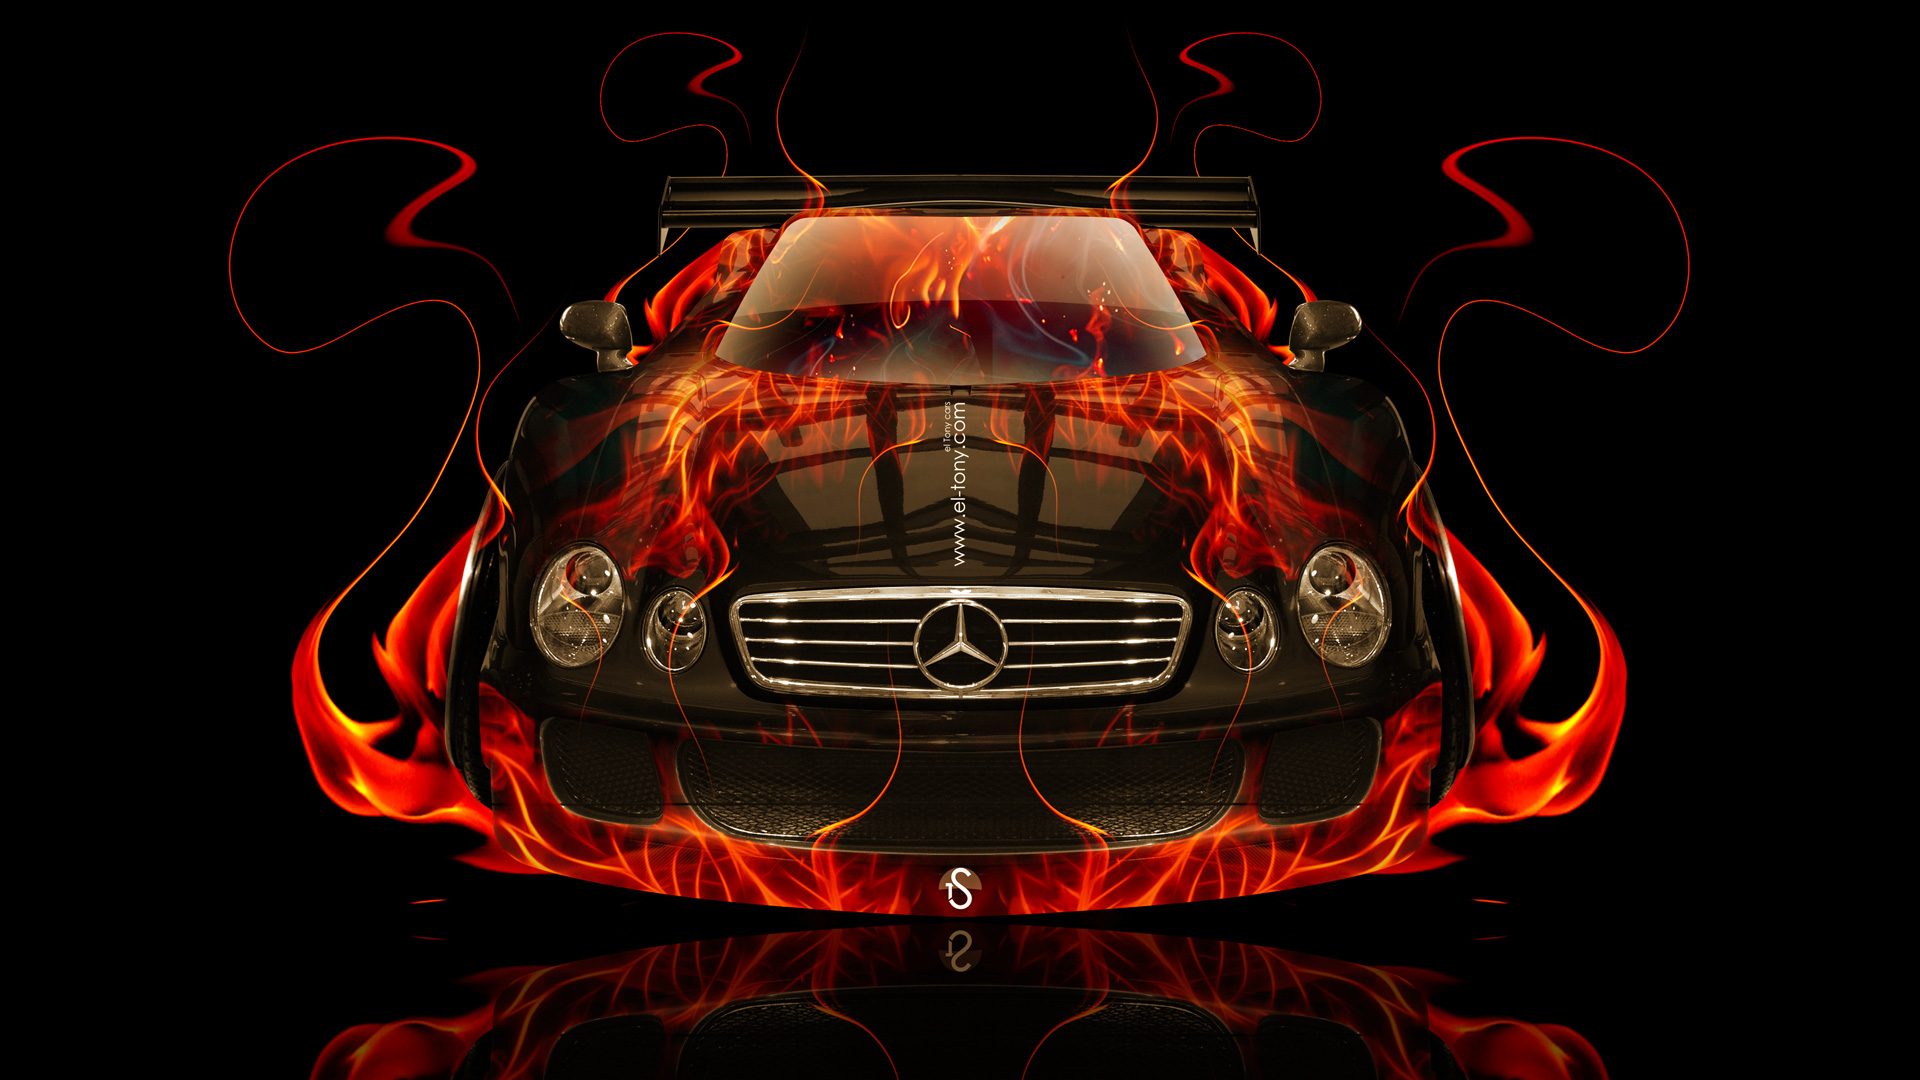 Mercedes-Benz CLK GTR Fire Abstract Car 2014 | el Tony